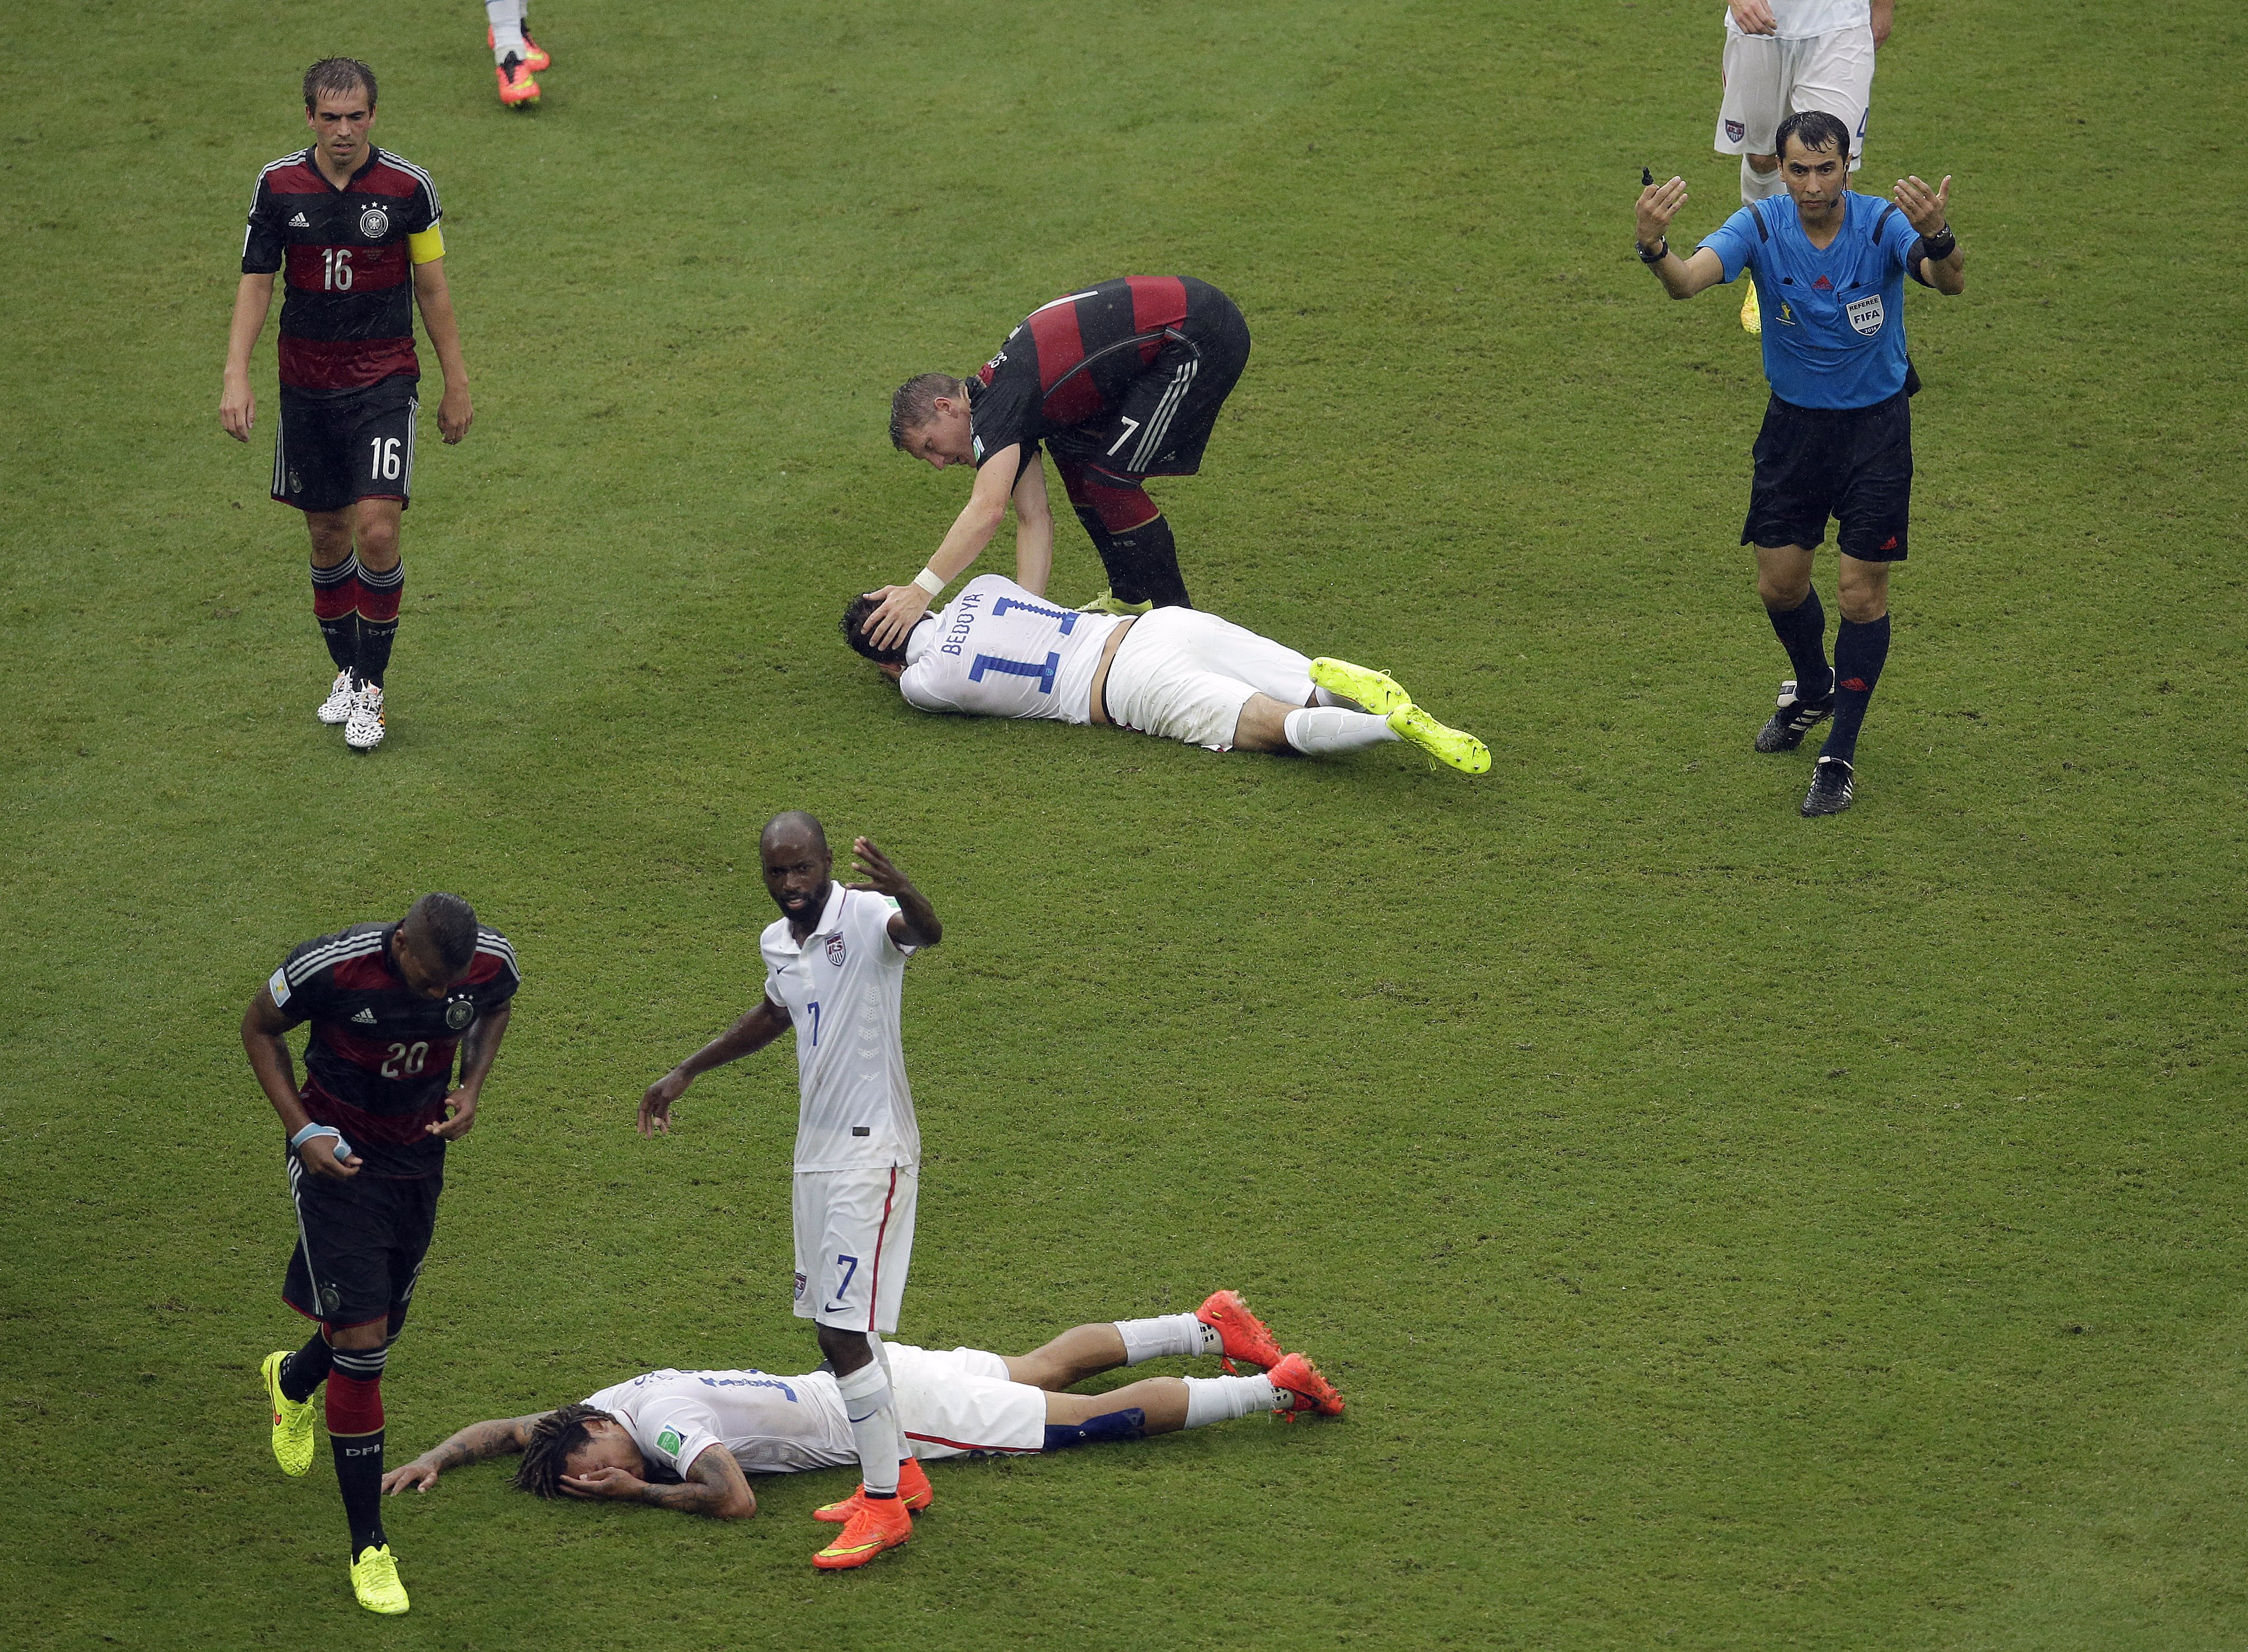 United States' Jermaine Jones, foreground, and United States' Alejandro Bedoya lie injured after colliding with each other at the Arena Pernambuco in Recife, Brazil on June 26, 2014.